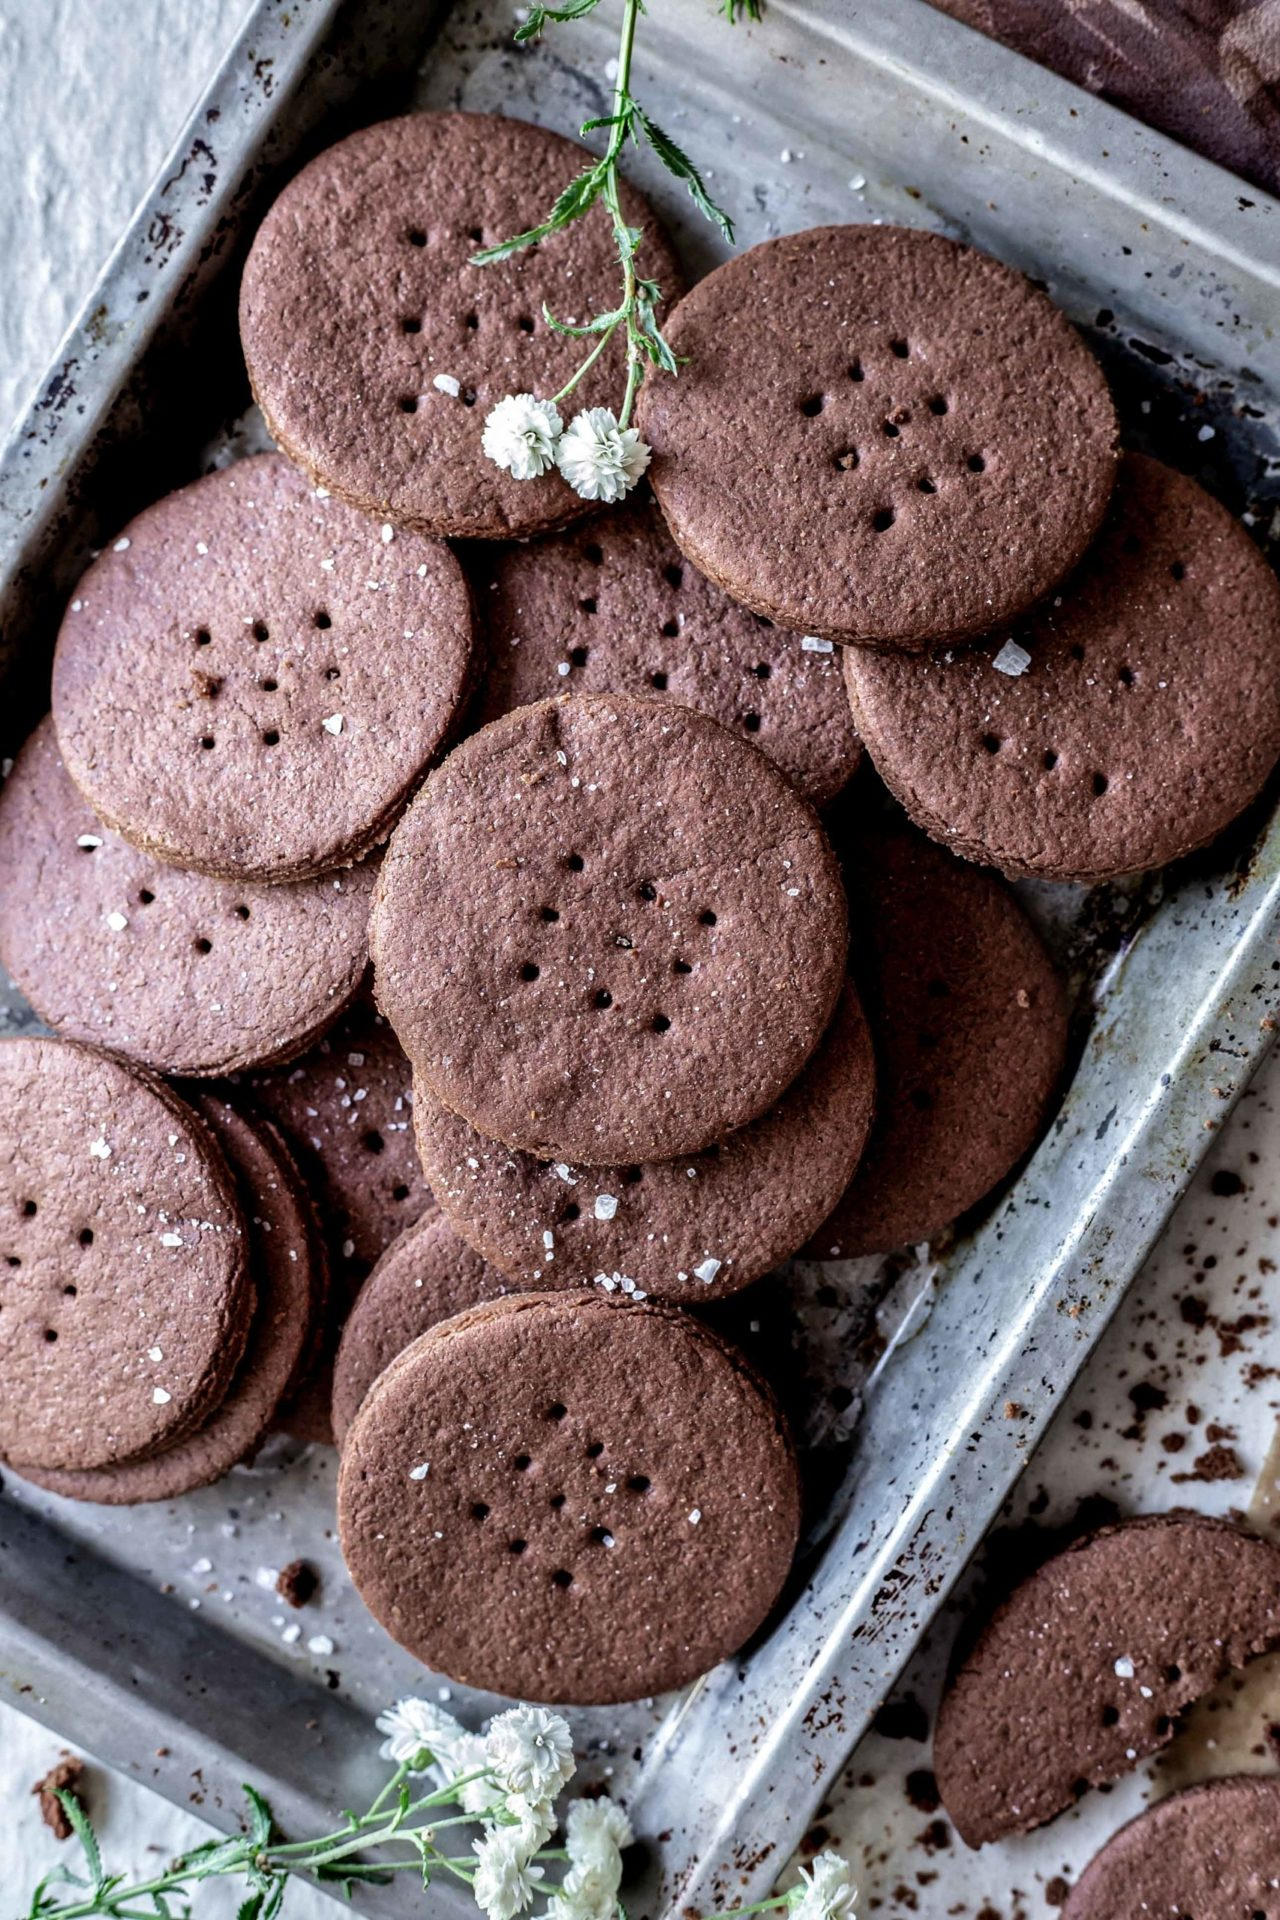 These Gluten-Free Chocolate Wafer Cookies are soft, chewy, perfectly sweetened, extra chocolaty, flavorful, buttery and so delicious!